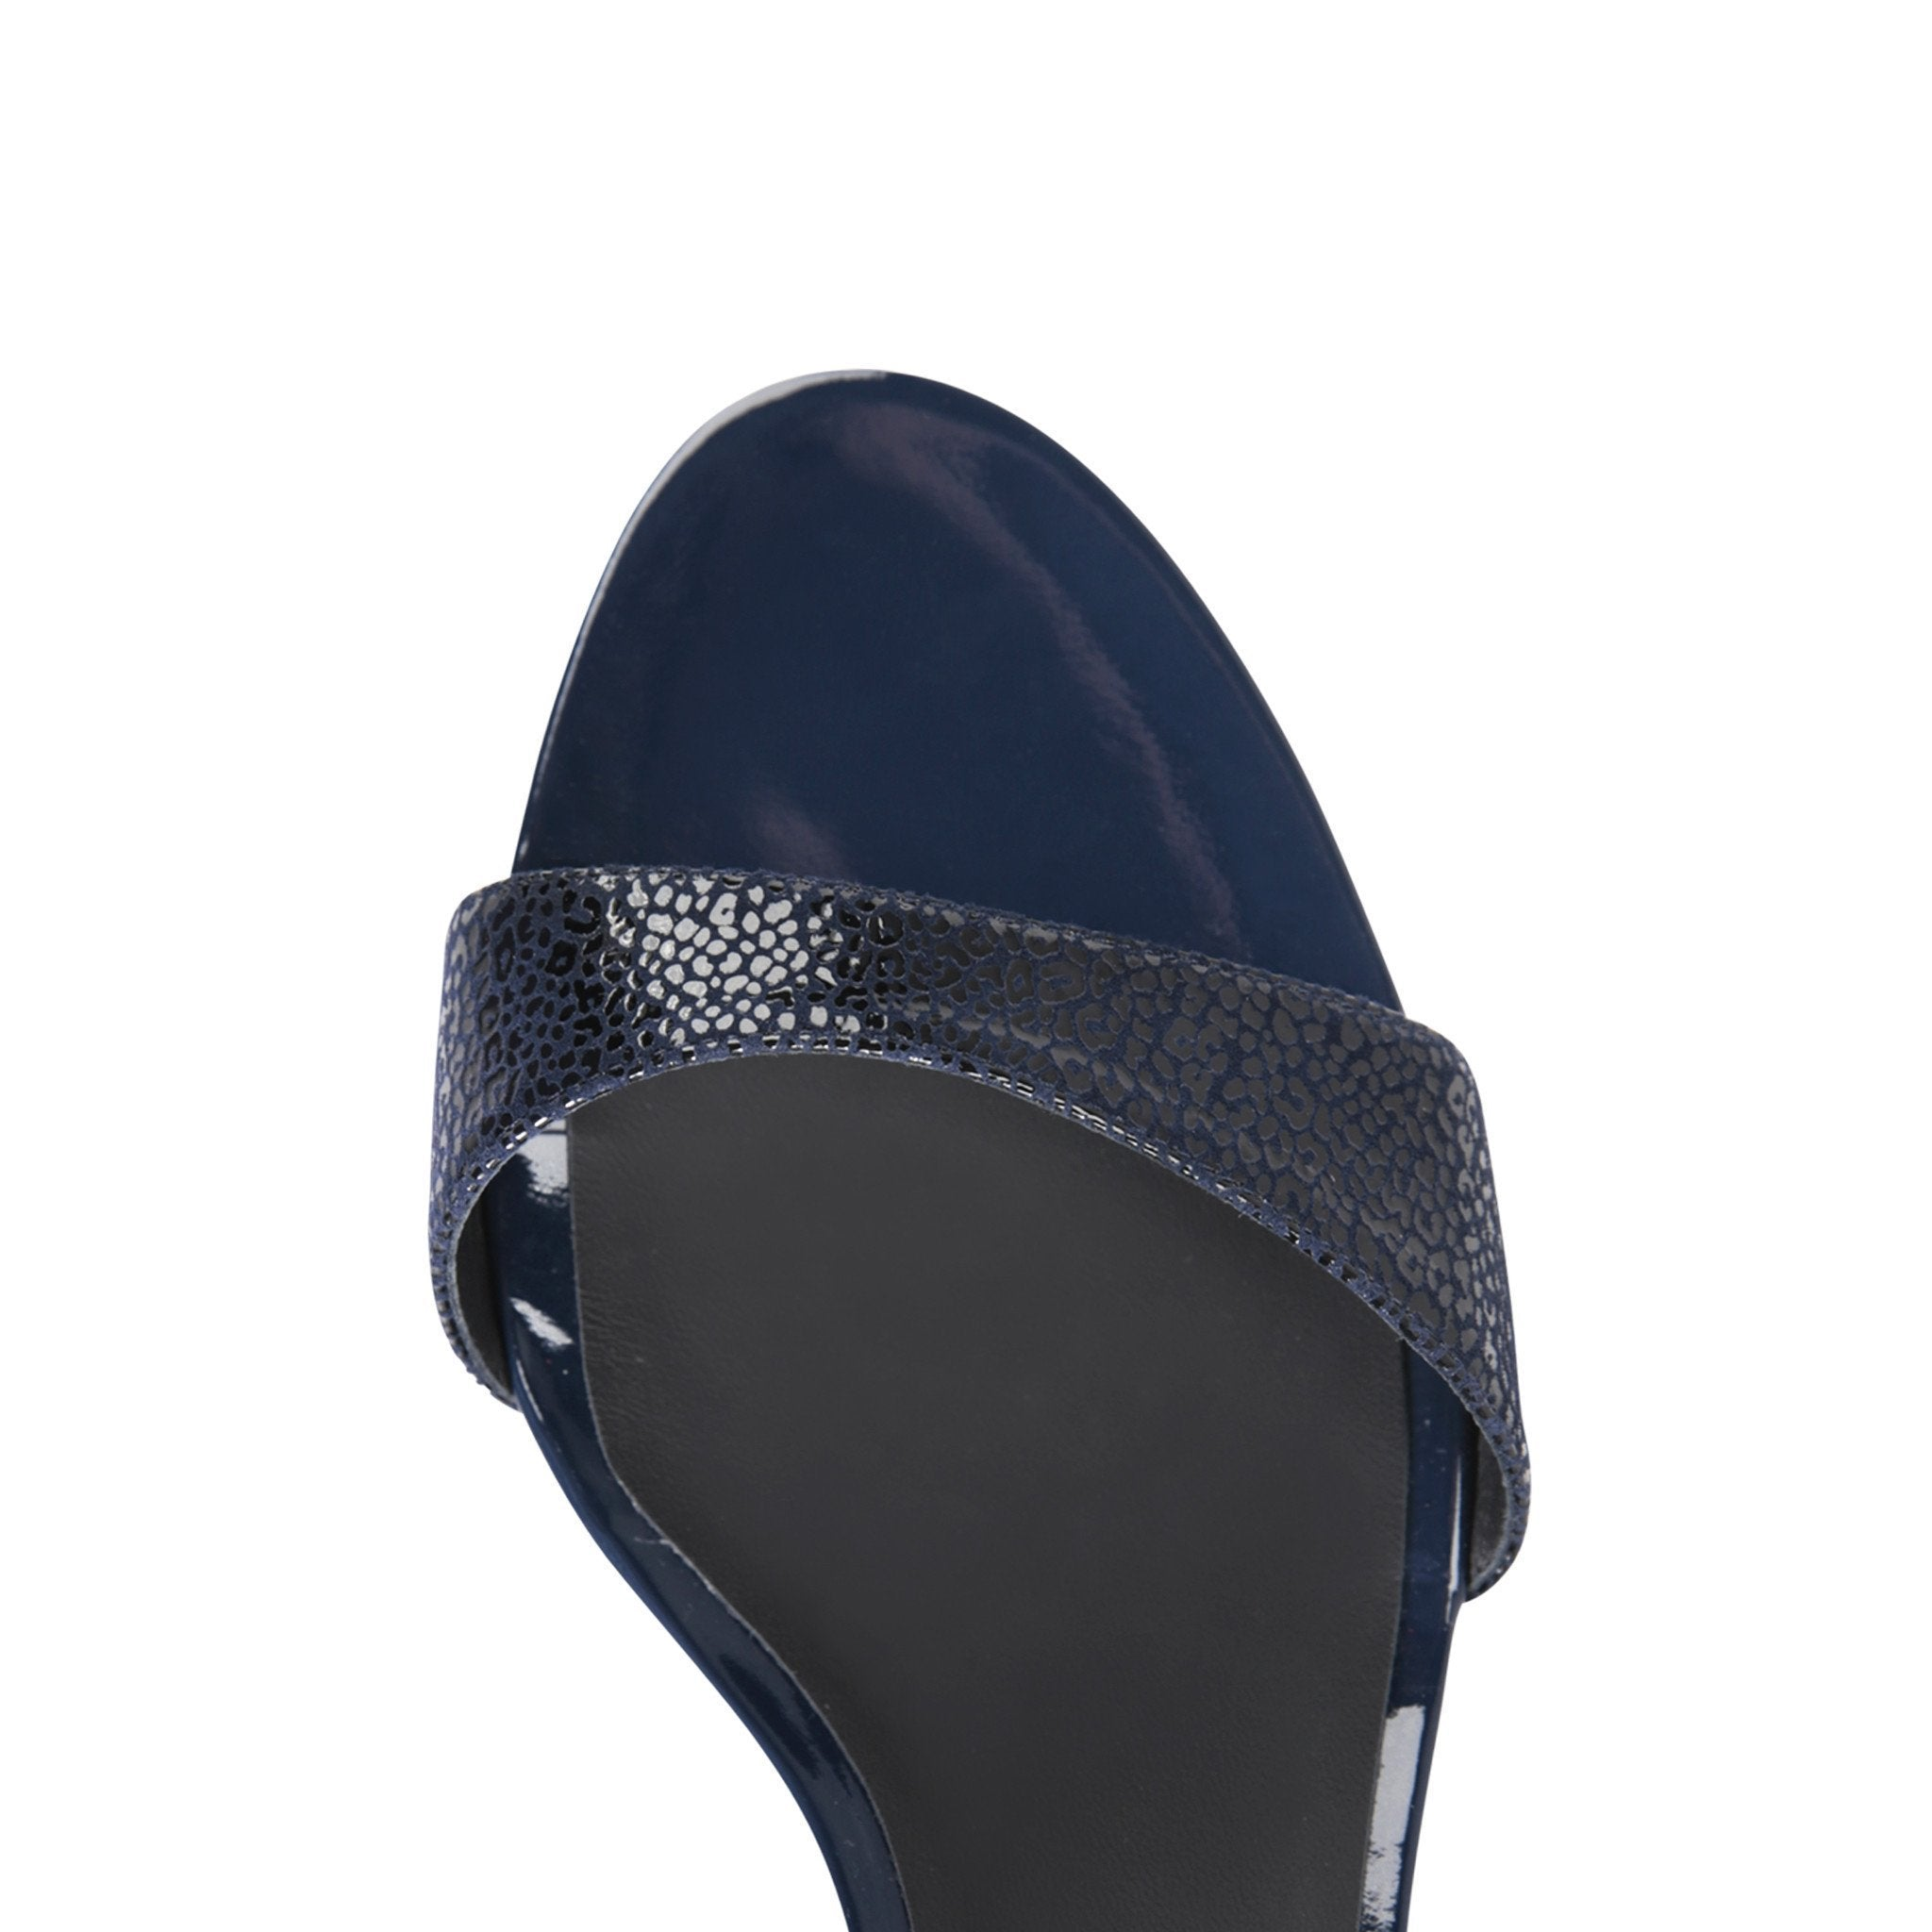 MODENA - Savannah + Patent Midnight, VIAJIYU - Women's Hand Made Sustainable Luxury Shoes. Made in Italy. Made to Order.